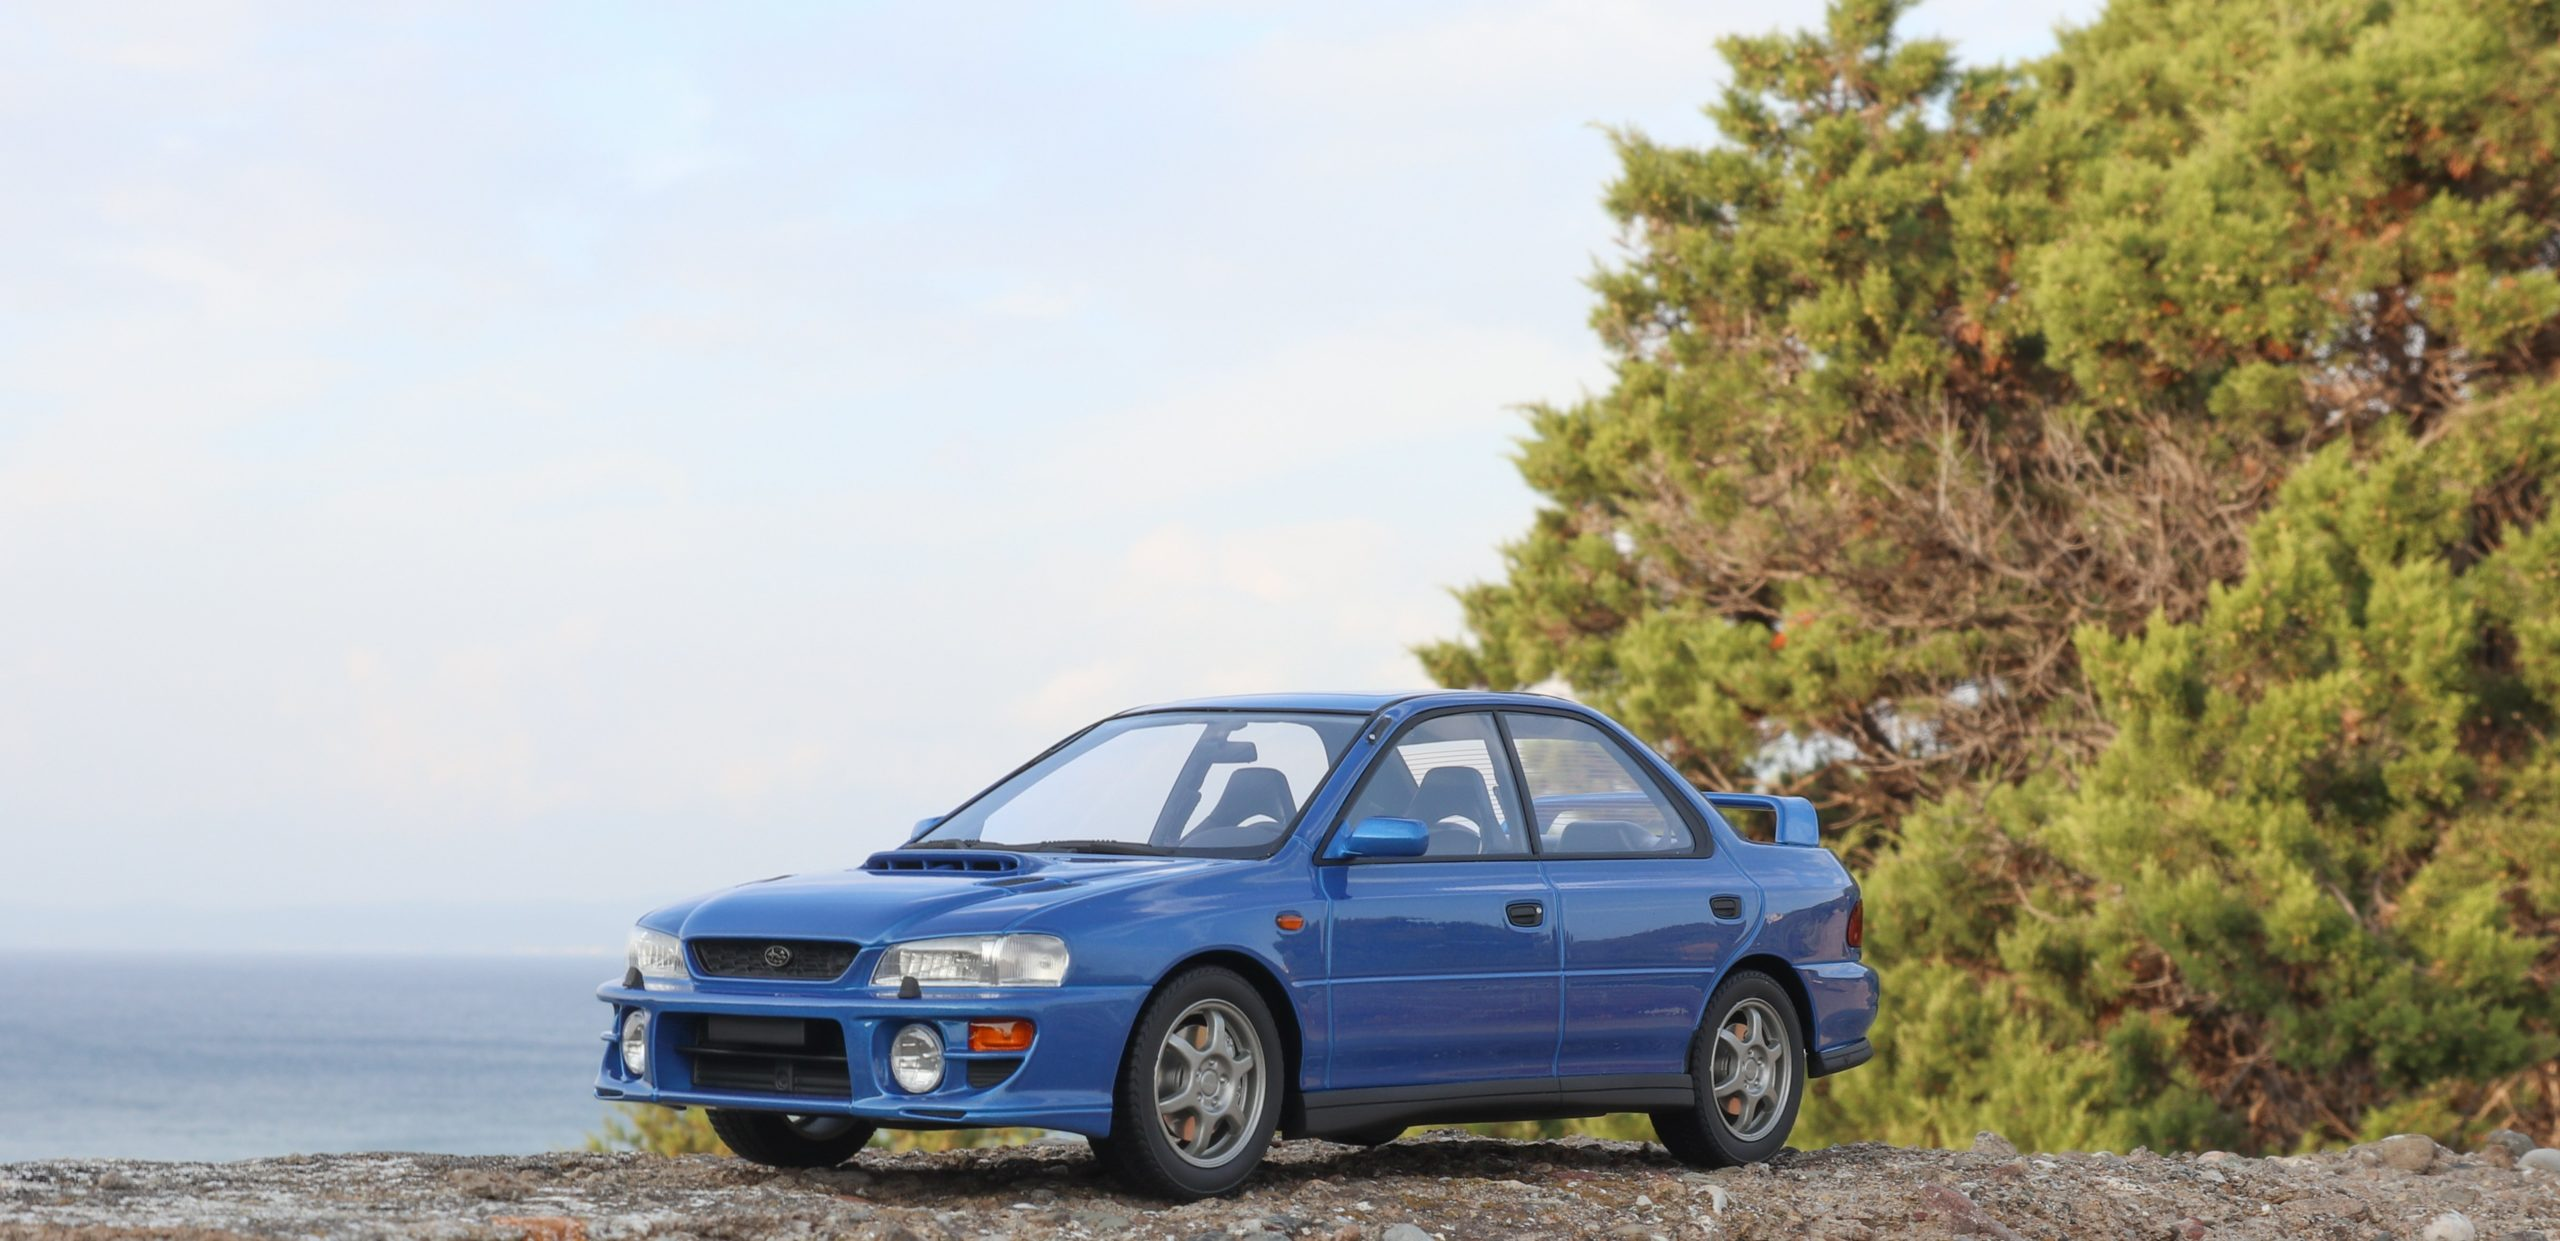 Subaru Impreza GT Turbo DNA Collectibles